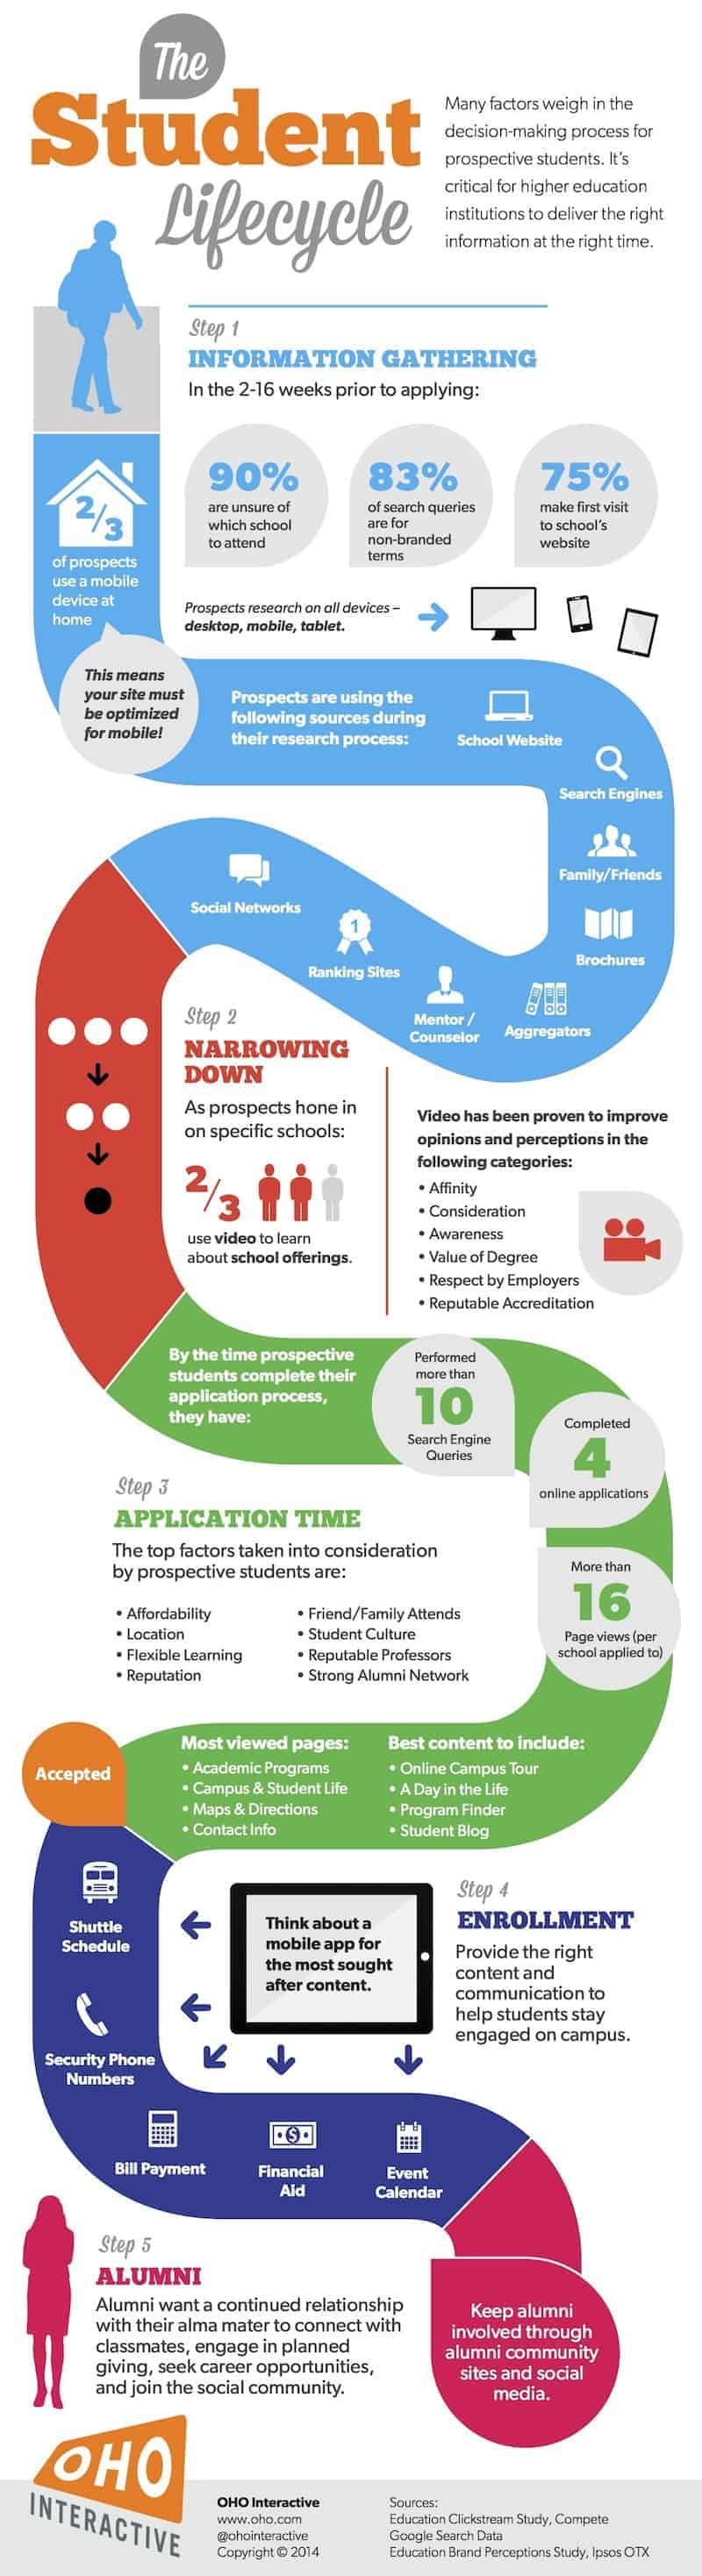 Infographic - The Student Marketing Lifecycle